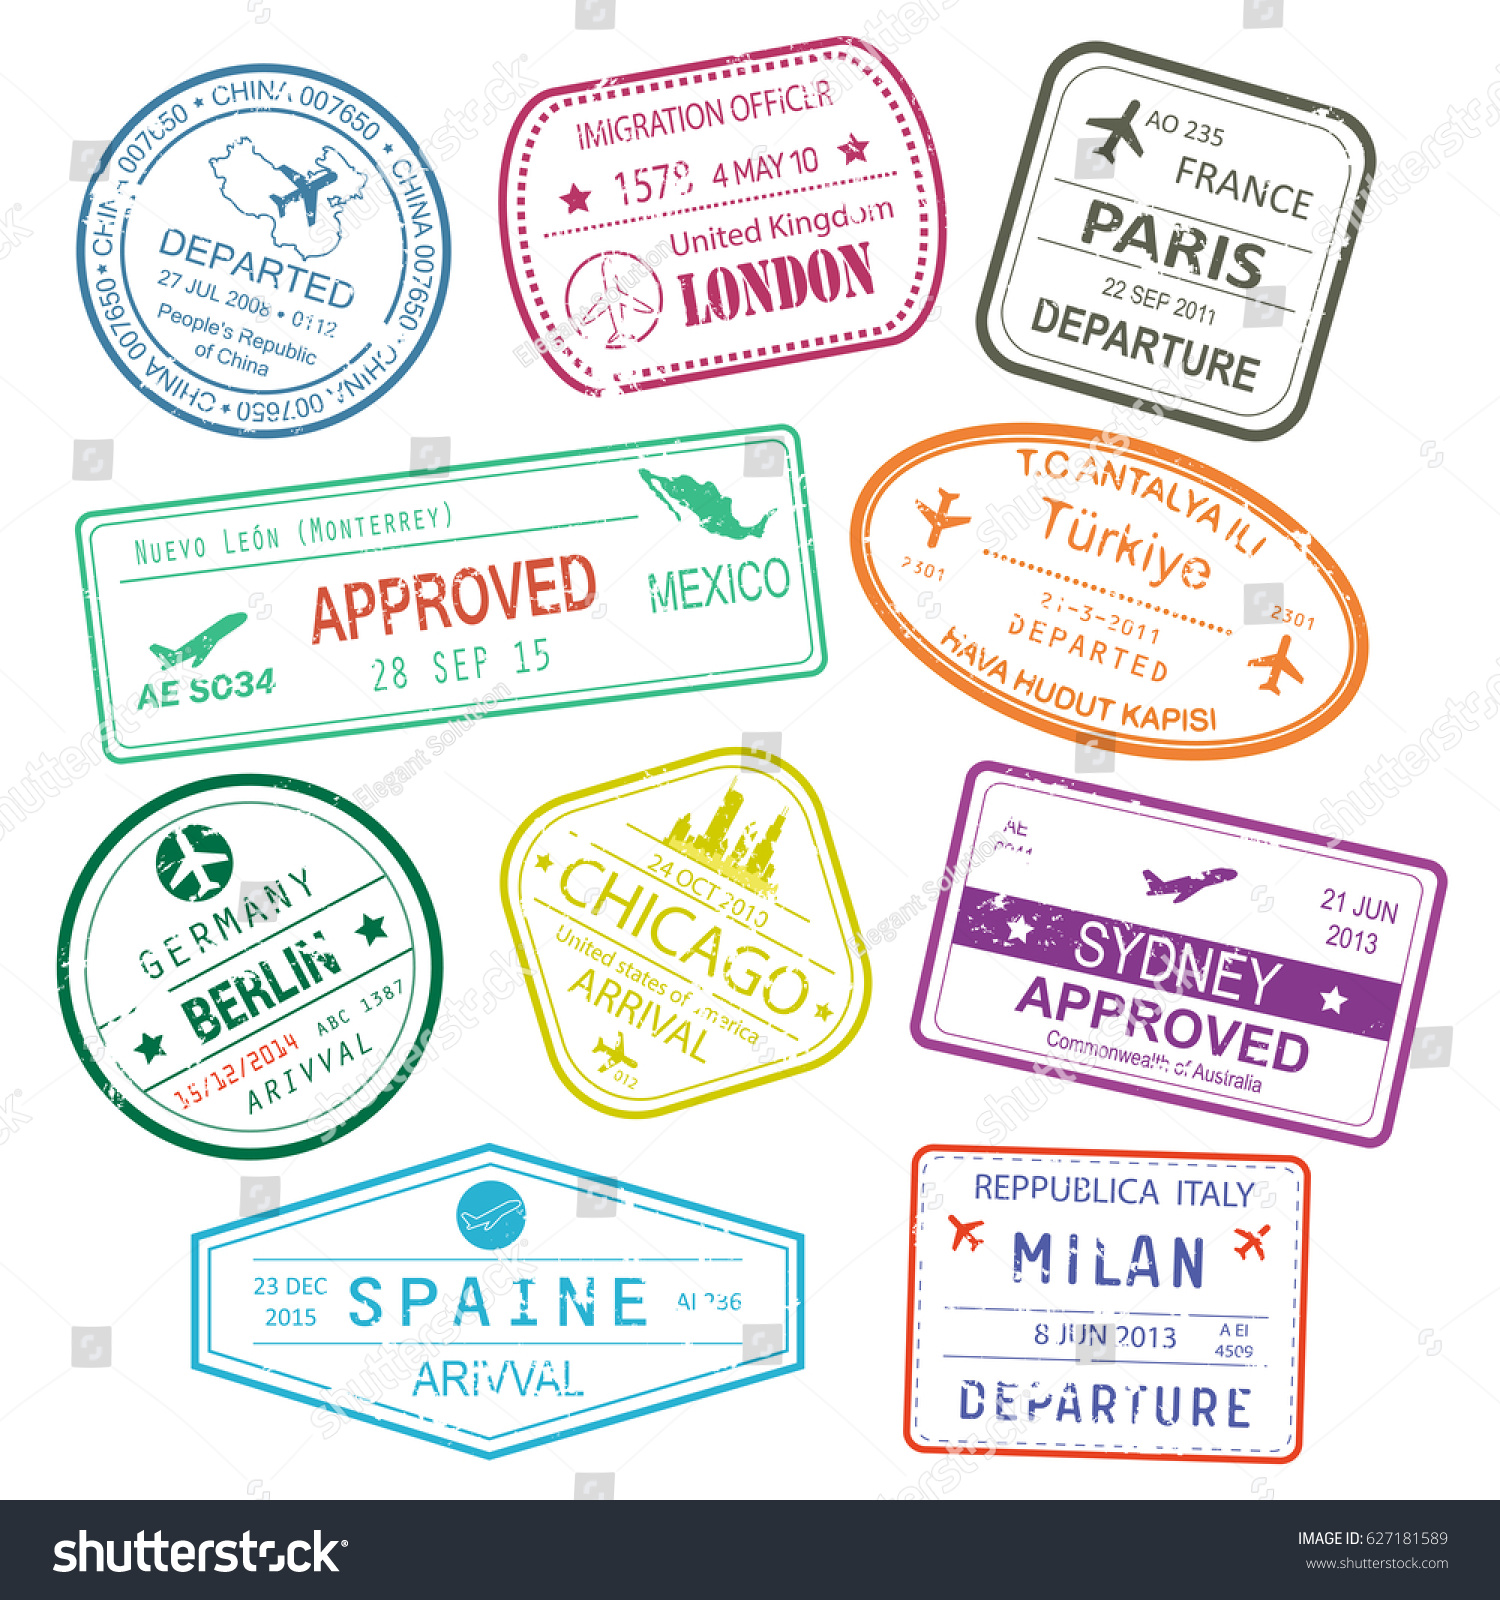 Different rubber stamps visa signs passport stock vector 627181589 different rubber stamps or visa signs in passport for germany berlin town or city china biocorpaavc Choice Image